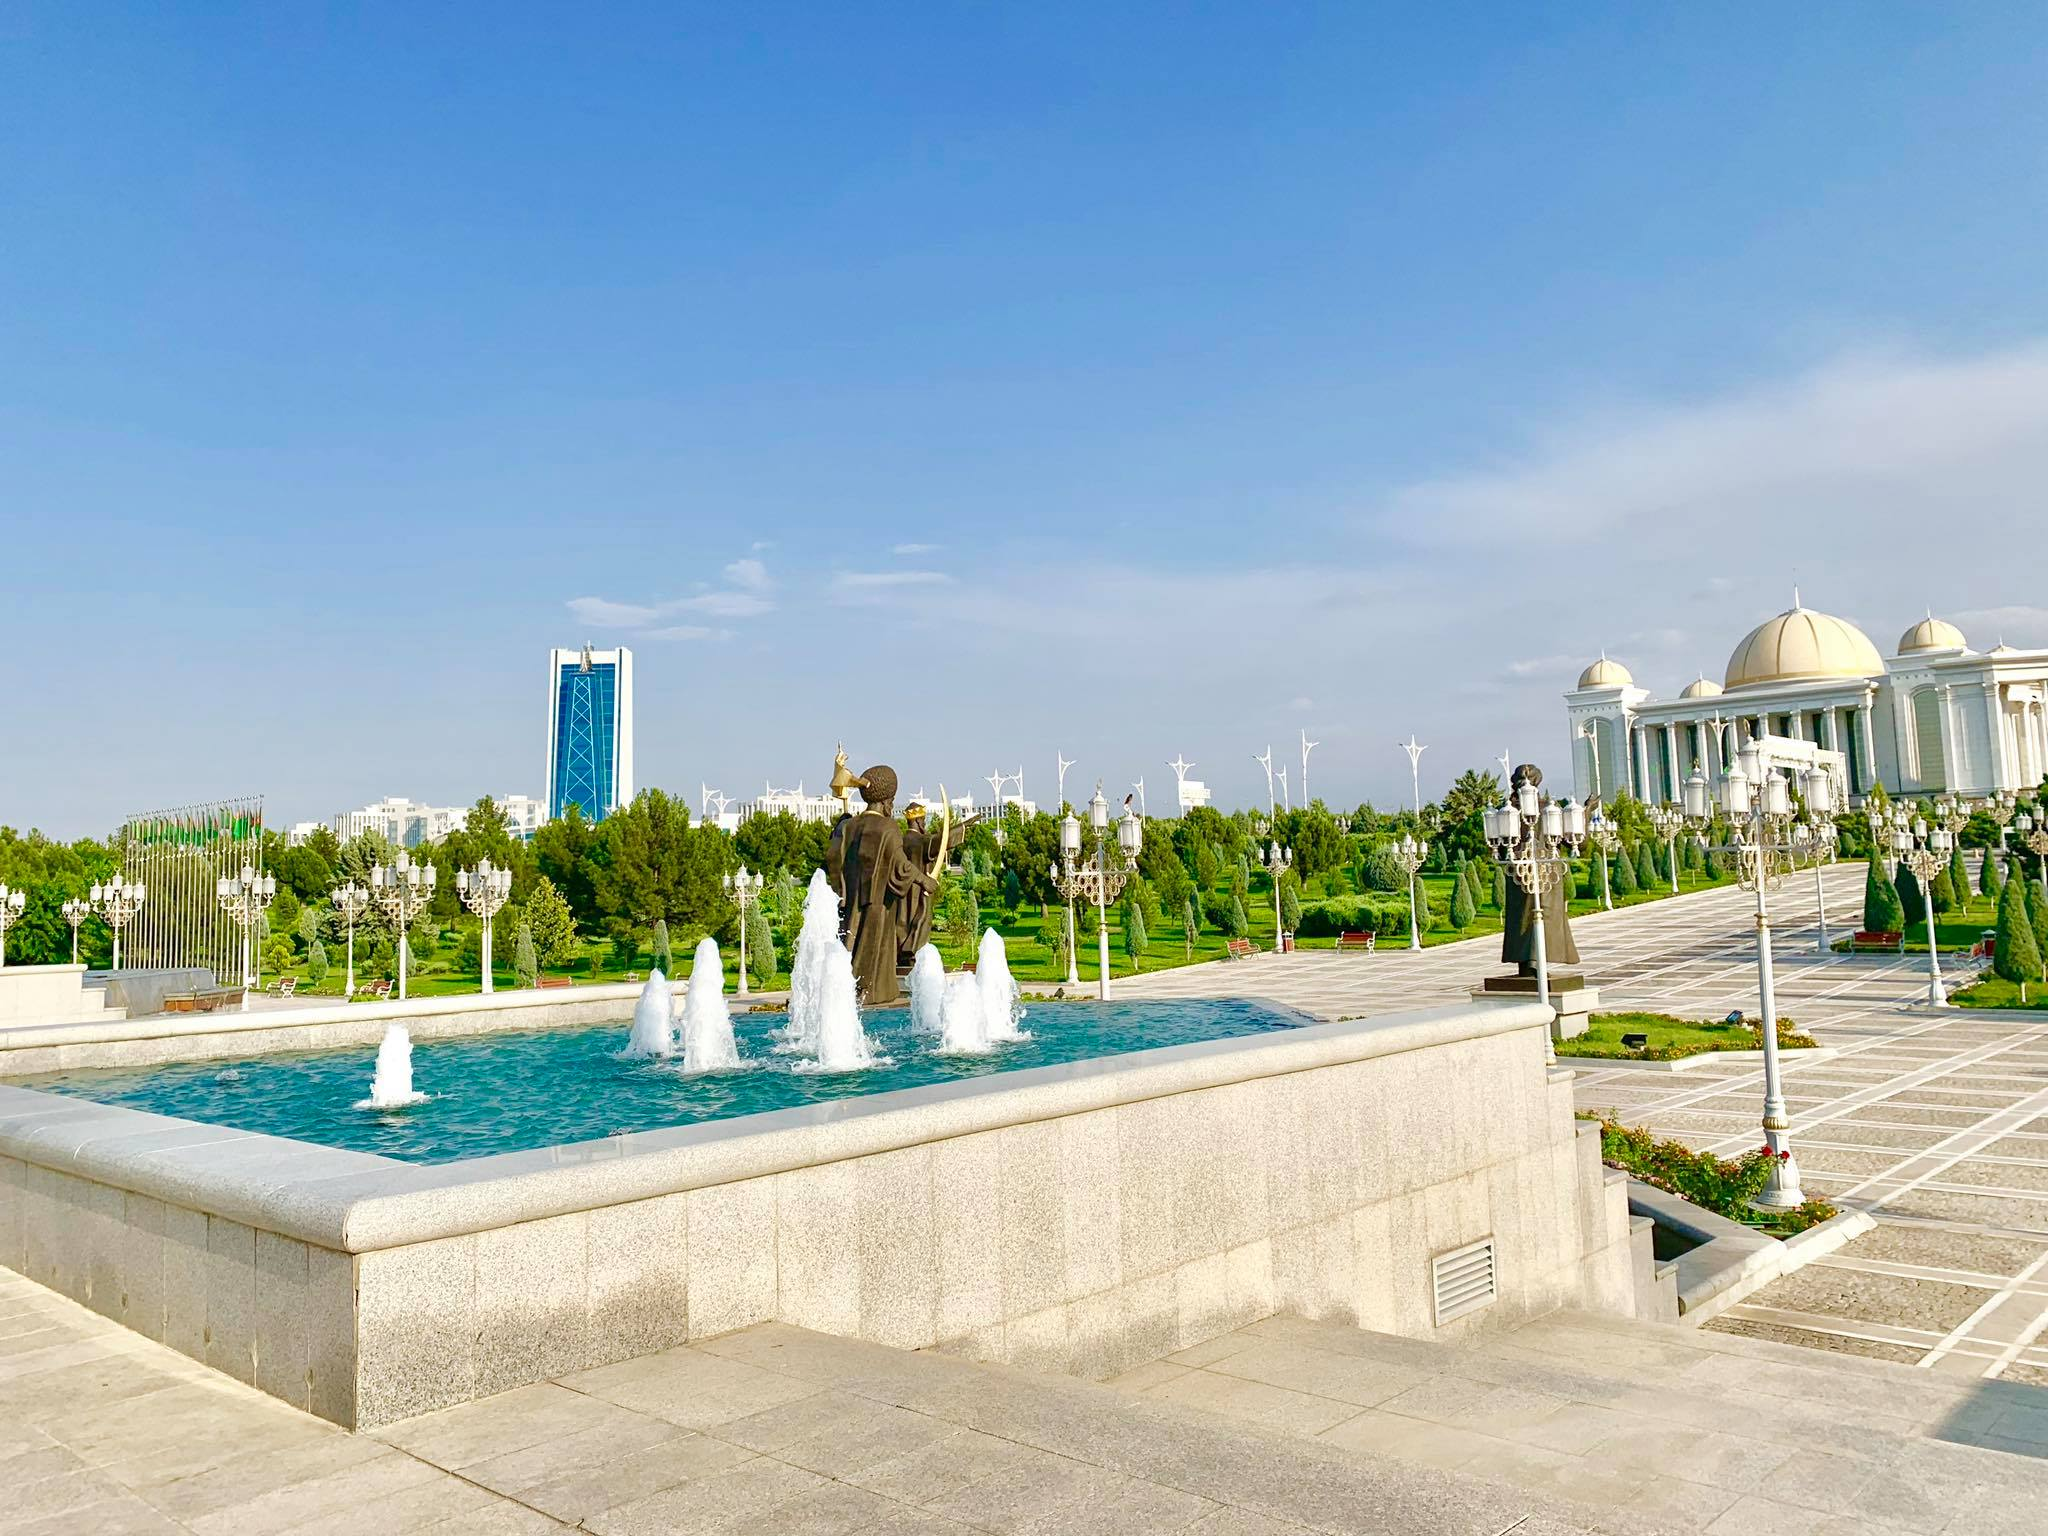 """Kach Solo Travels in 2019 Turkmenistan - the most """"unique"""" country I've visited in Central Asia9.jpg"""